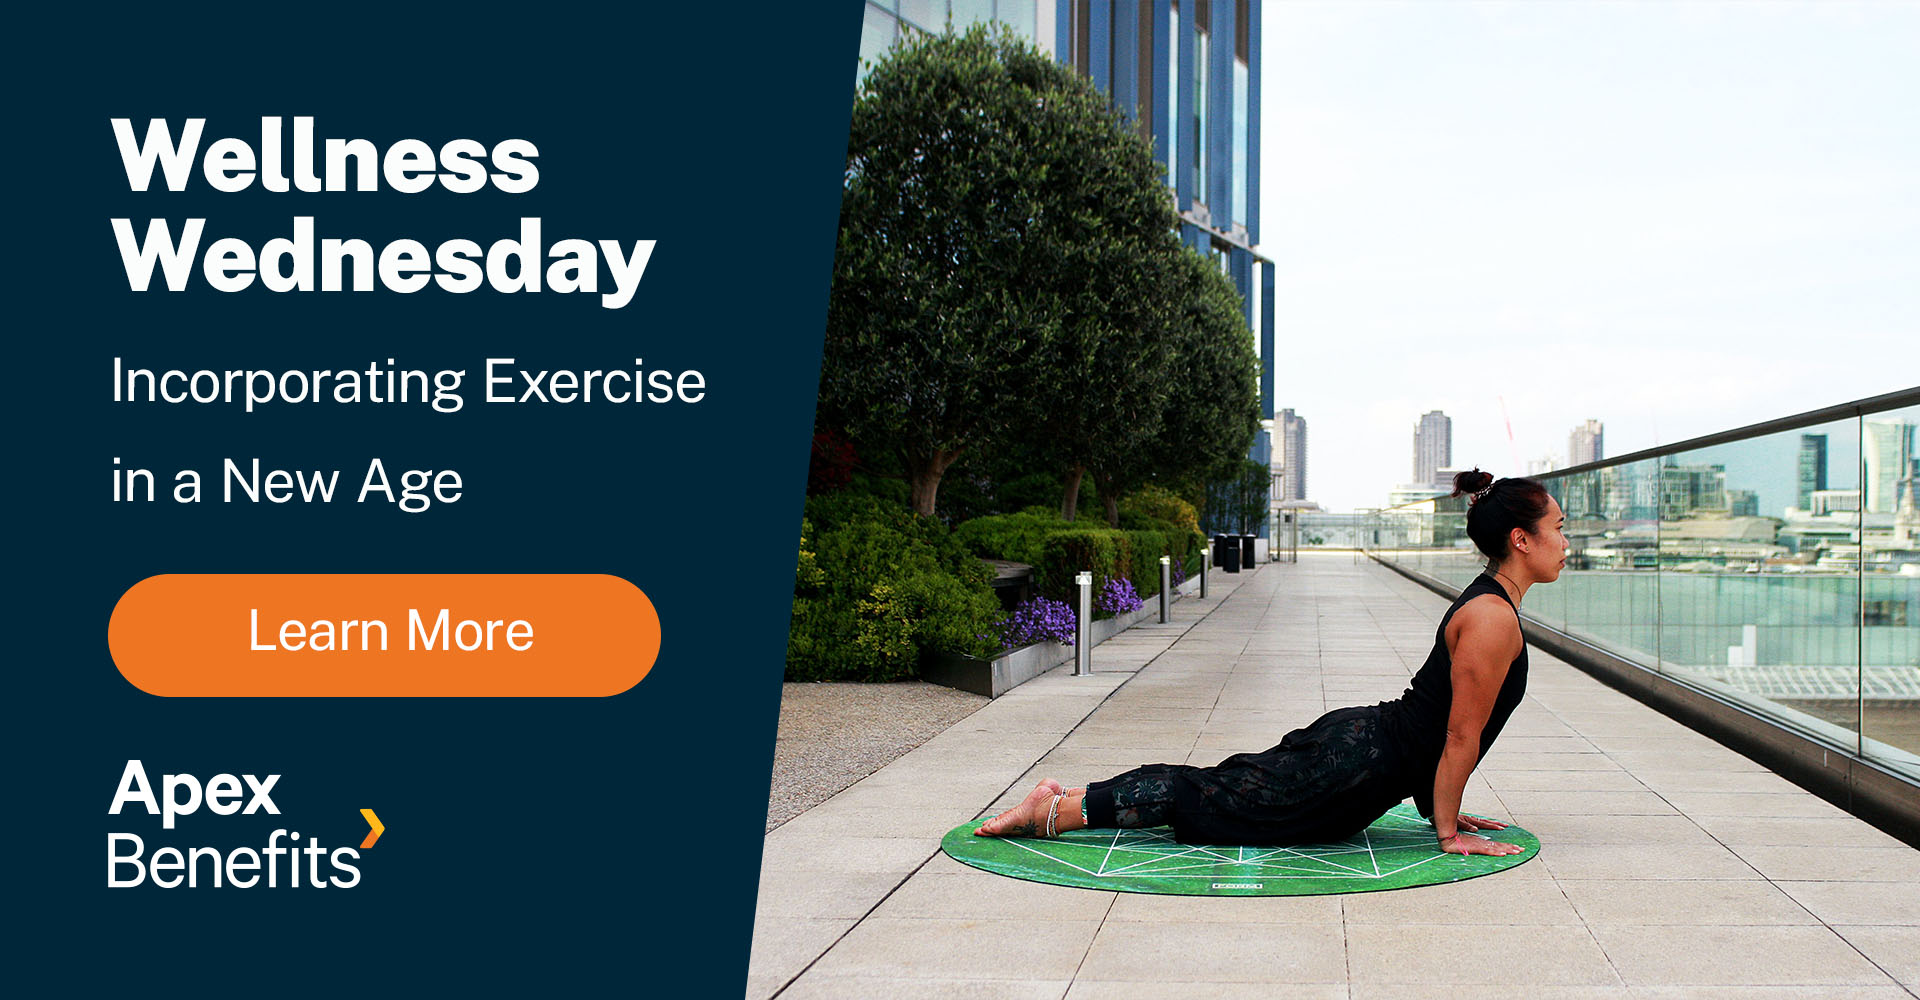 Wellness Wednesday: Incorporating Exercise in a New Age